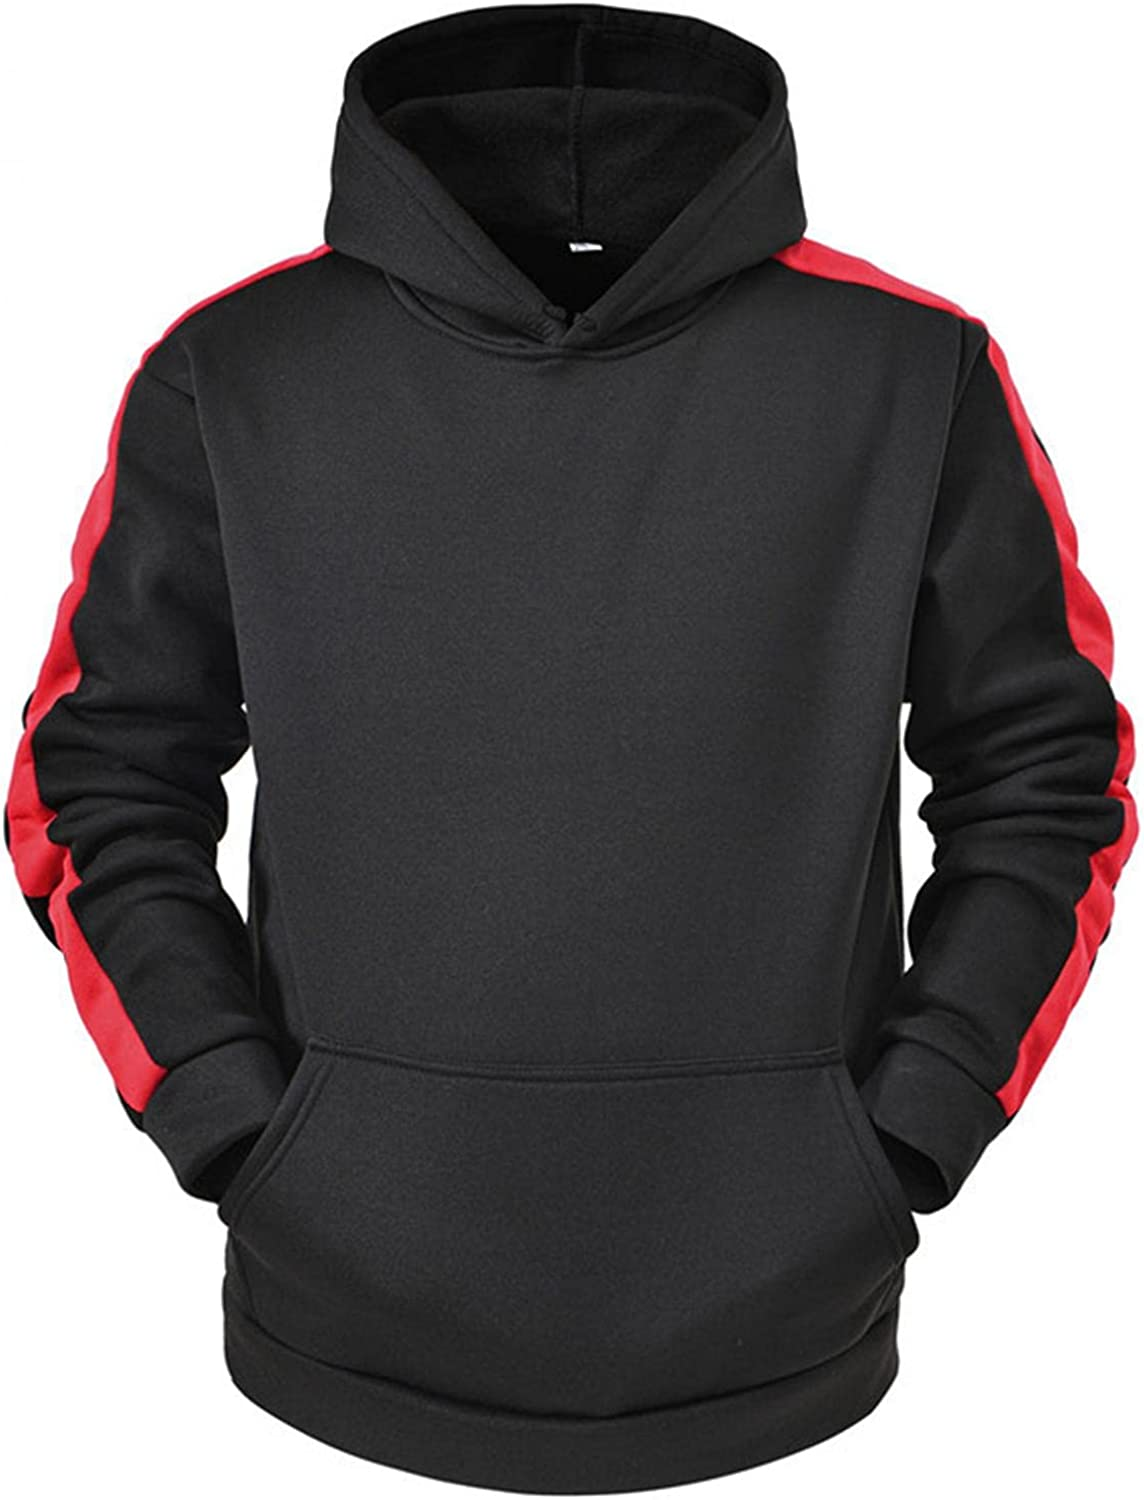 Huangse Warm Hoodie Sweatshirt for Men Classic Fit Side Striped Long Sleeve Pullover Jogging Gym Athletic Wear